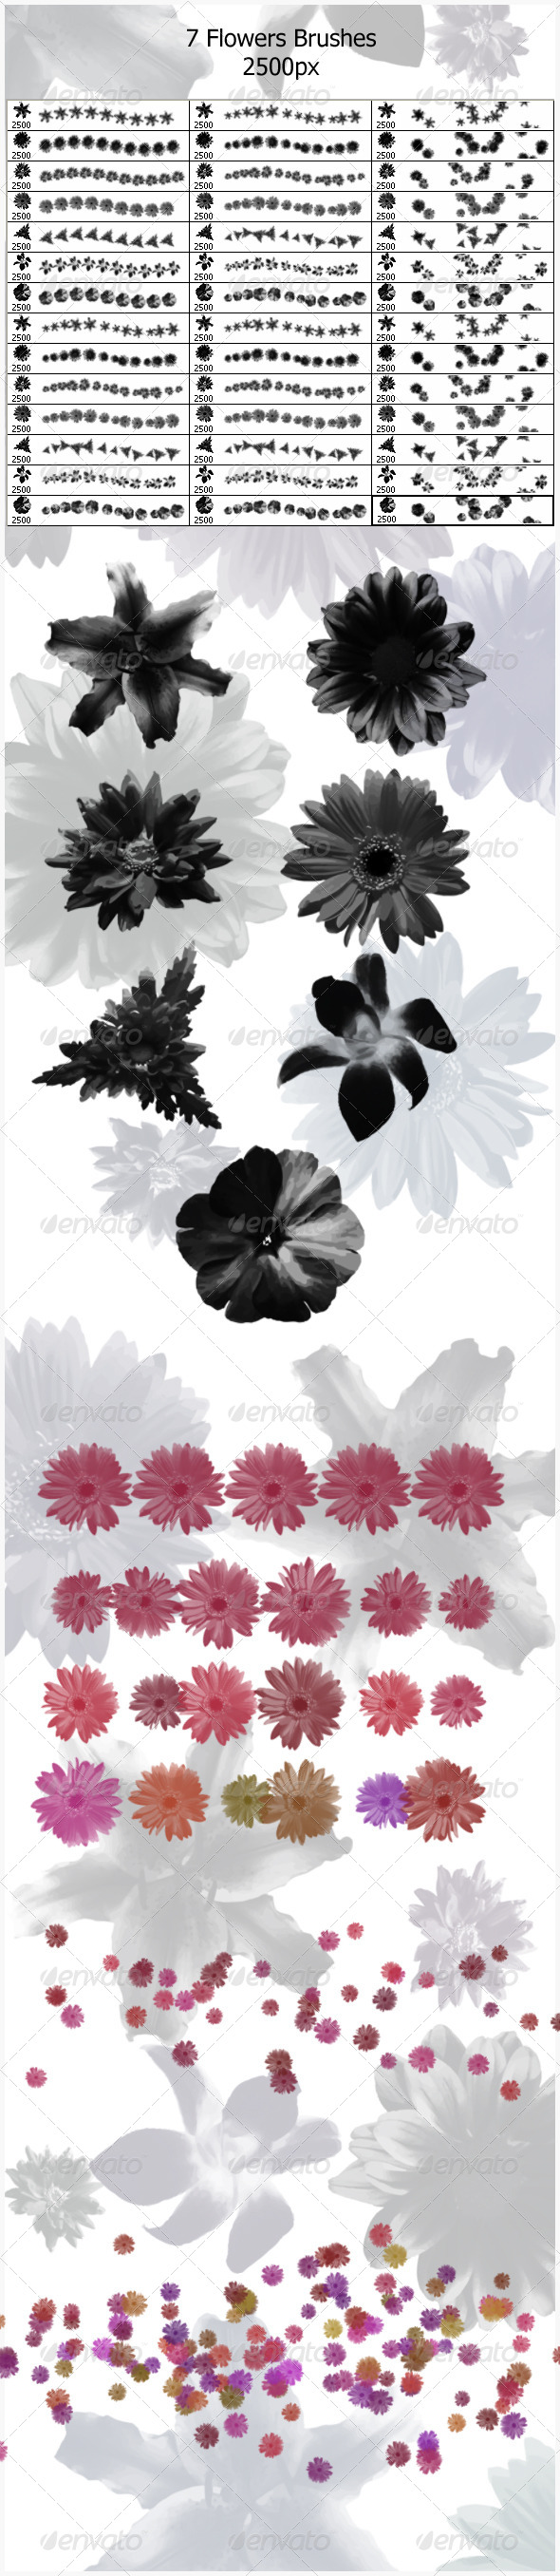 7 Flowers Brushes (2500px) - Flourishes Brushes